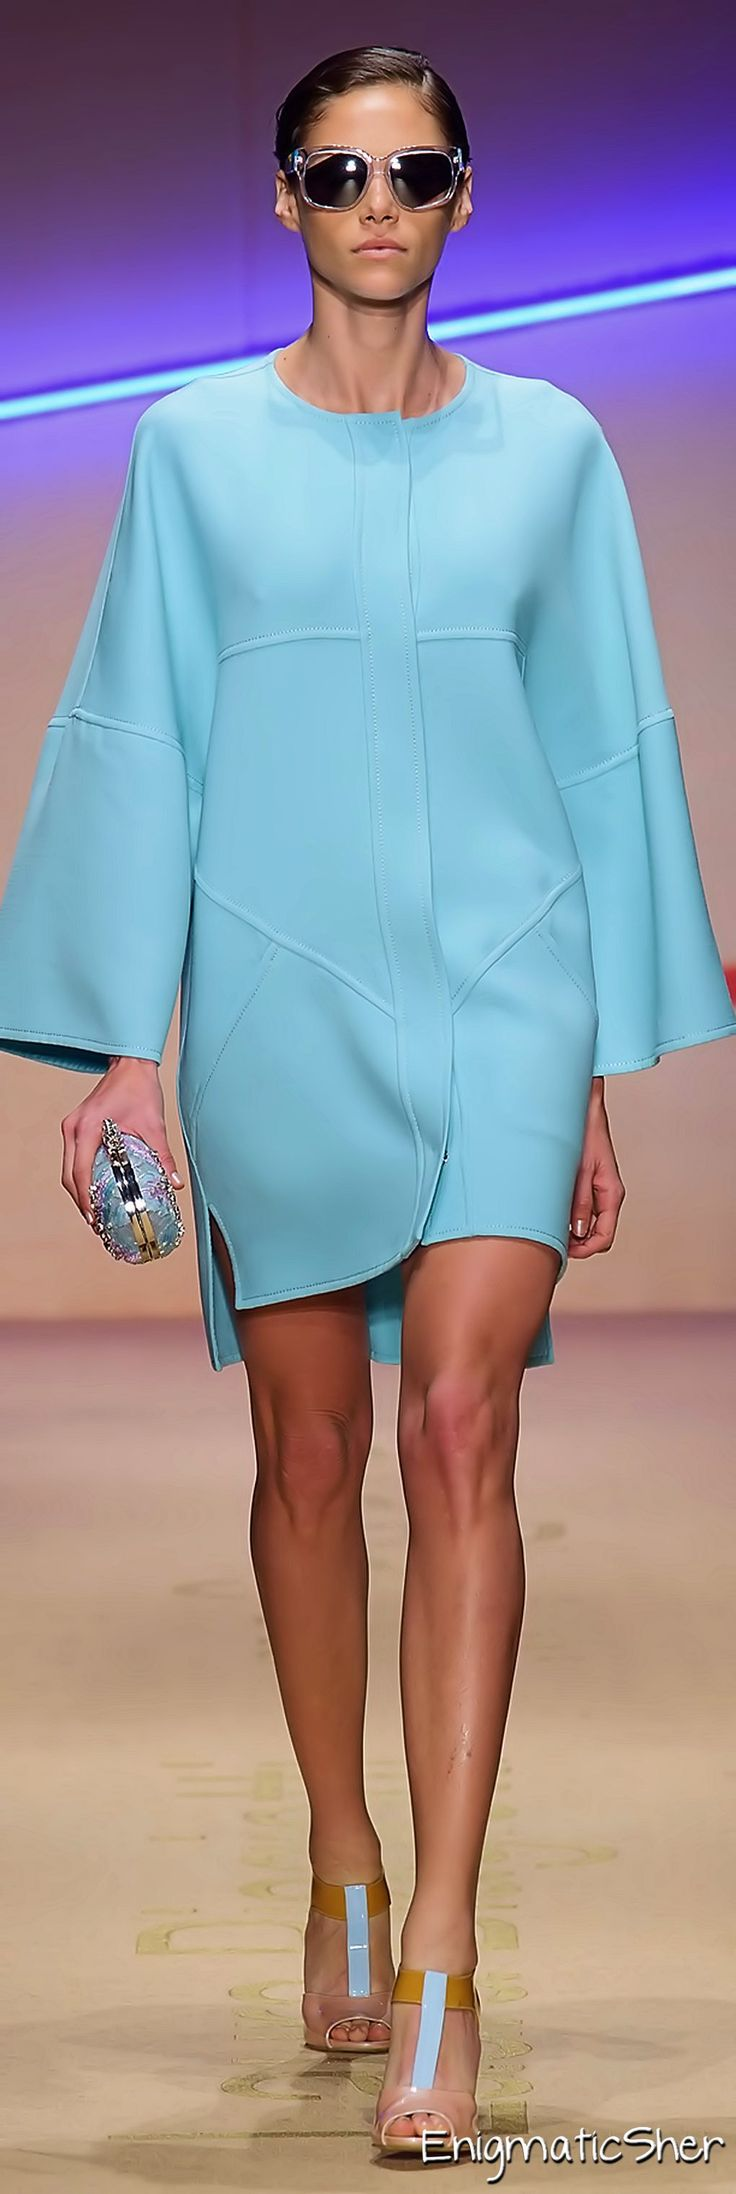 Laura Biagiotti Spring Summer 2015 Ready-To-Wear